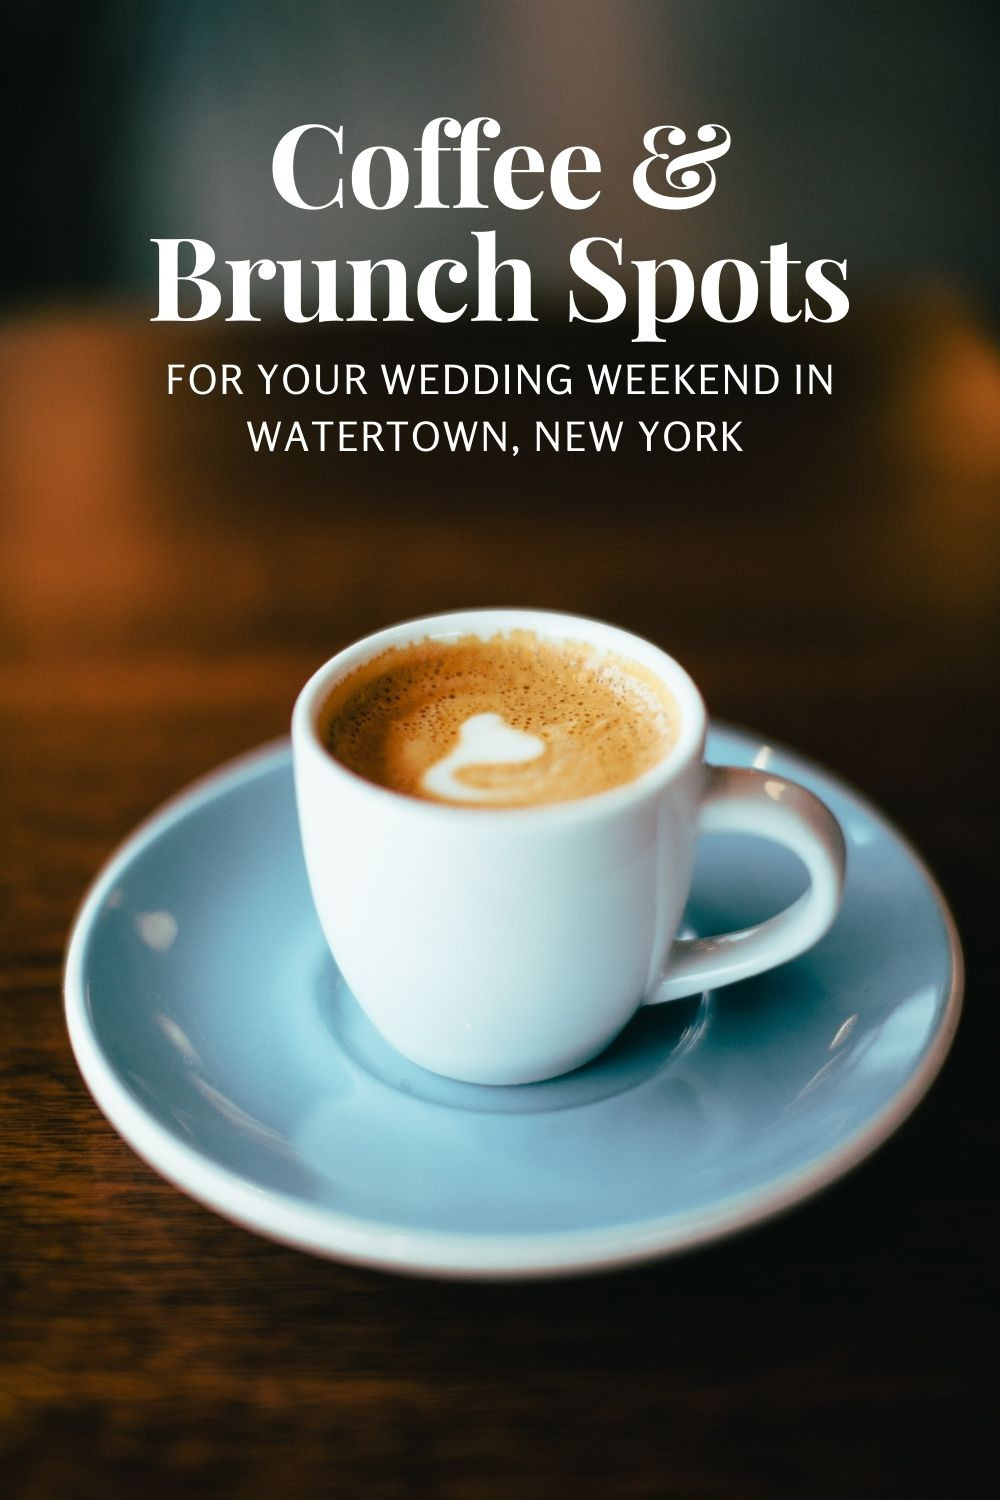 Coffee and Brunch Spots for your Wedding Weekend in Watertown, New York